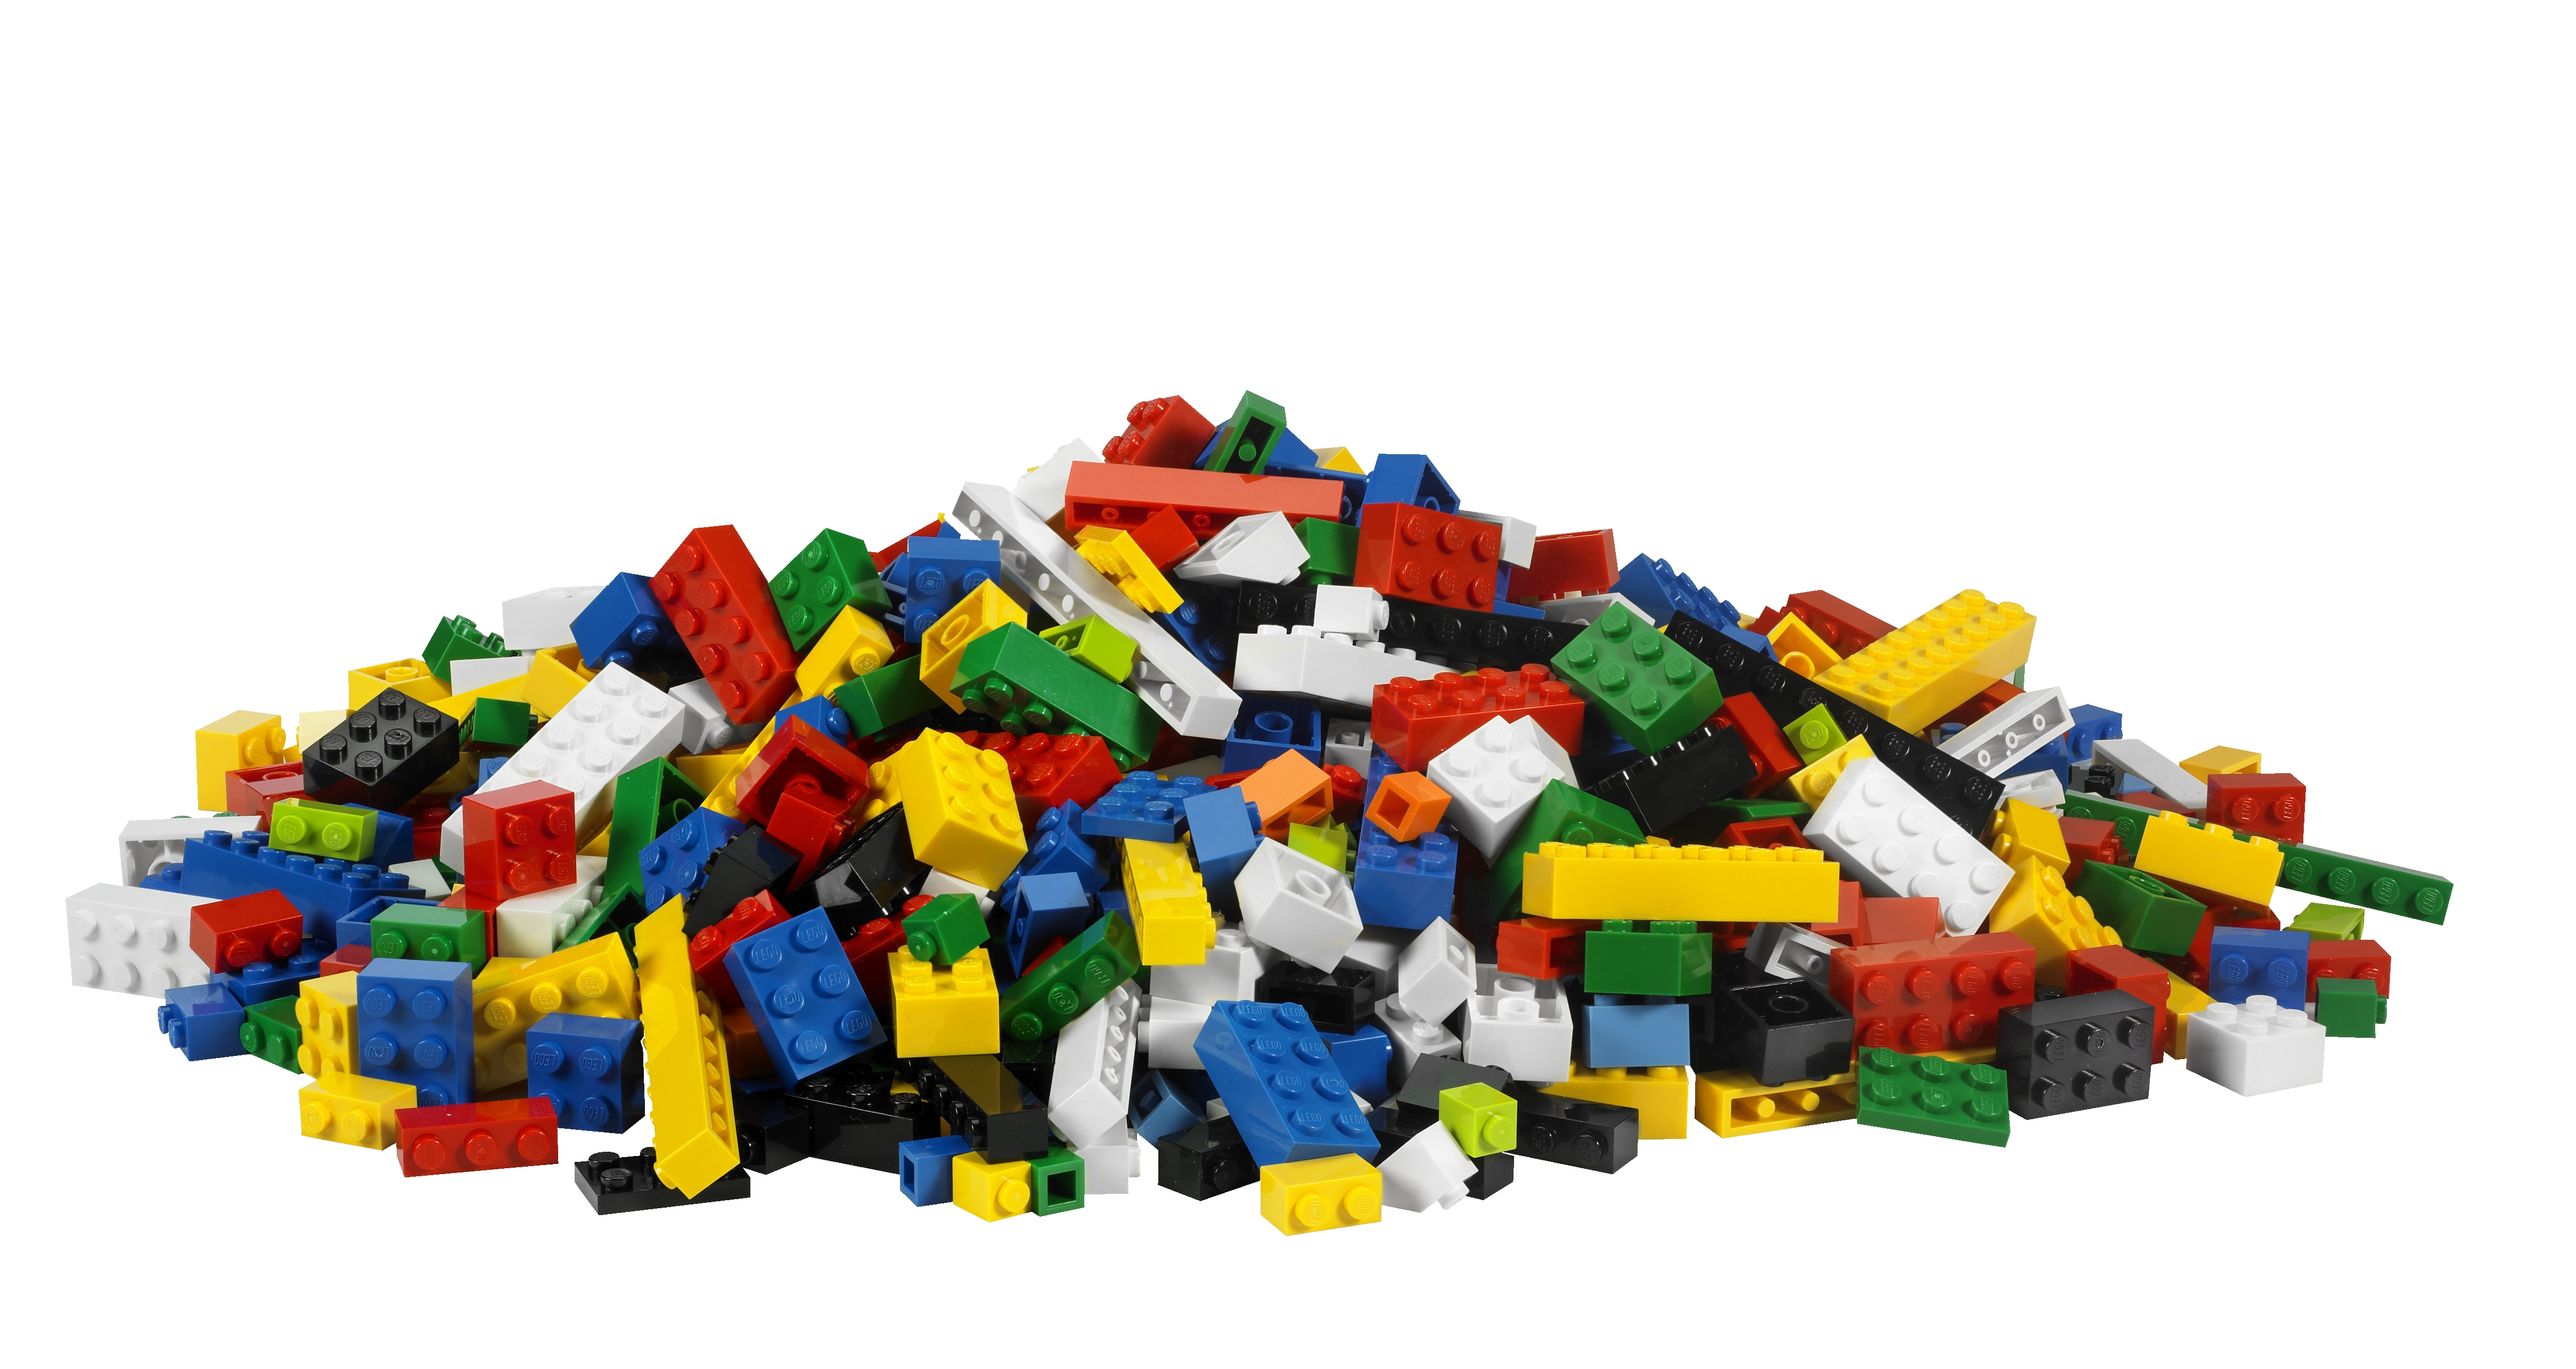 Legos clipart learning. Images of free download